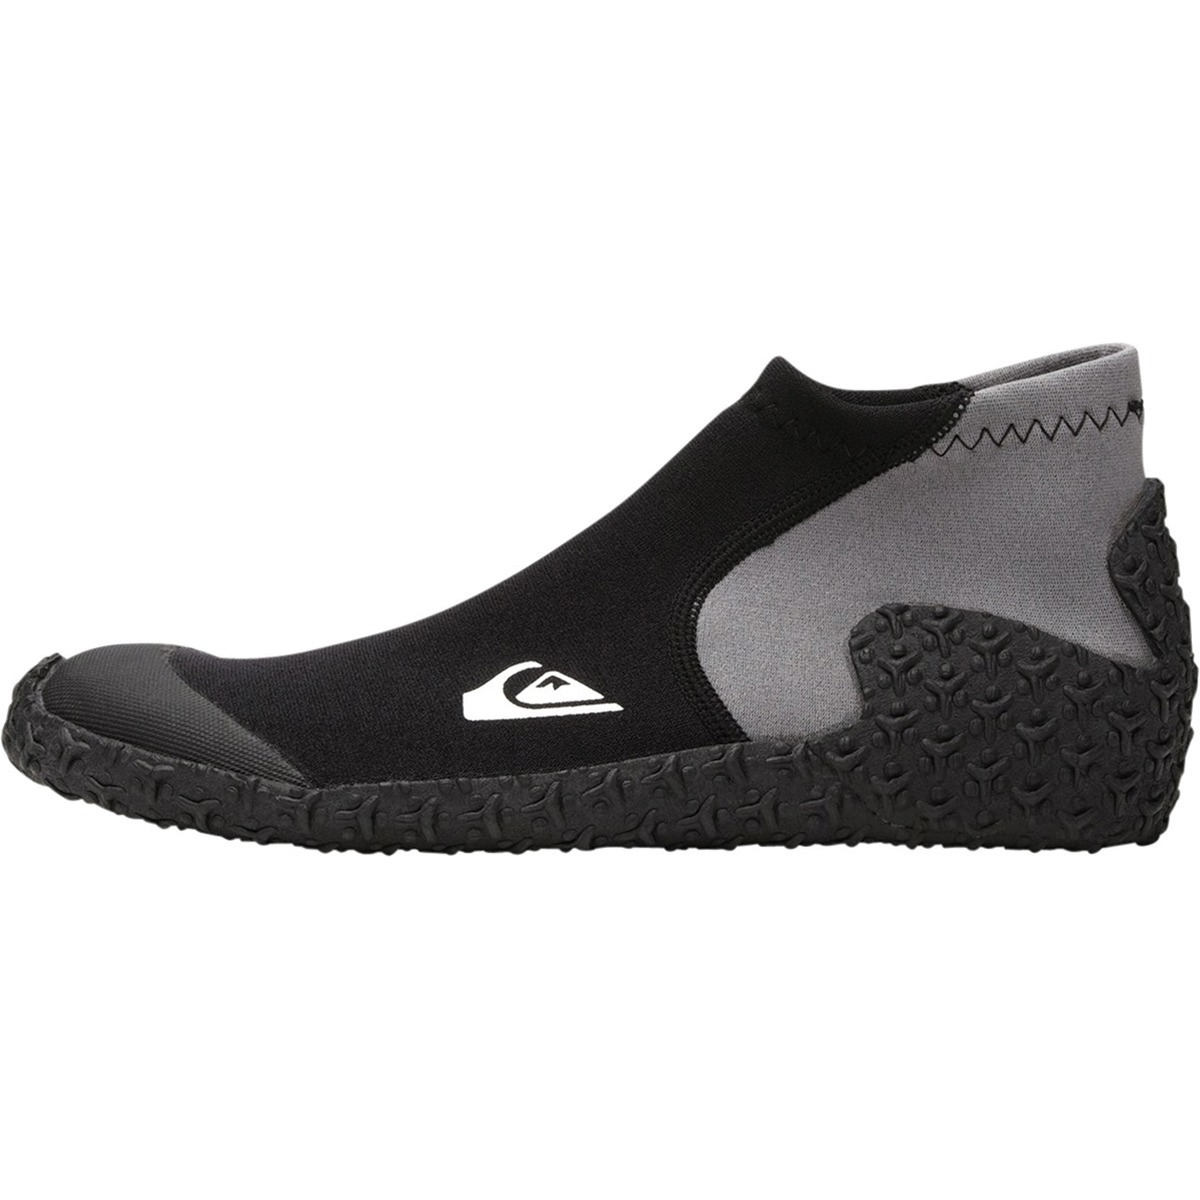 reef shoes quiksilver reef walker aqua shoes - mens icdmbas